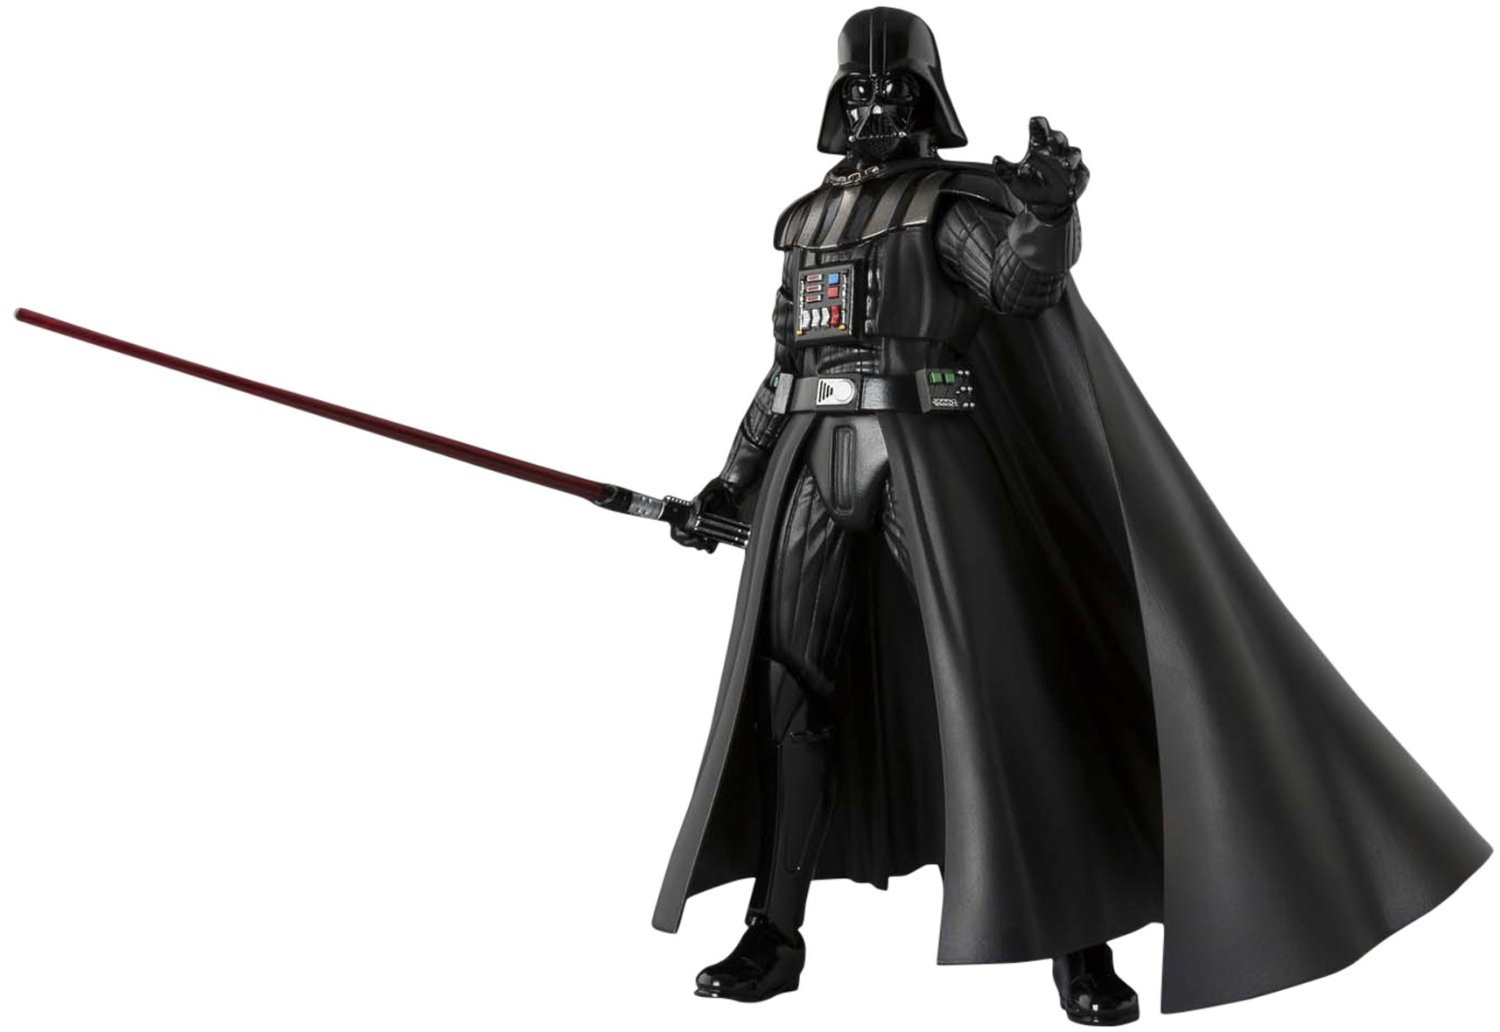 Sh Figuarts Star Wars Darth Vader About 155mm PVC Abs Painted Action Figure First Time With Benefits Figures